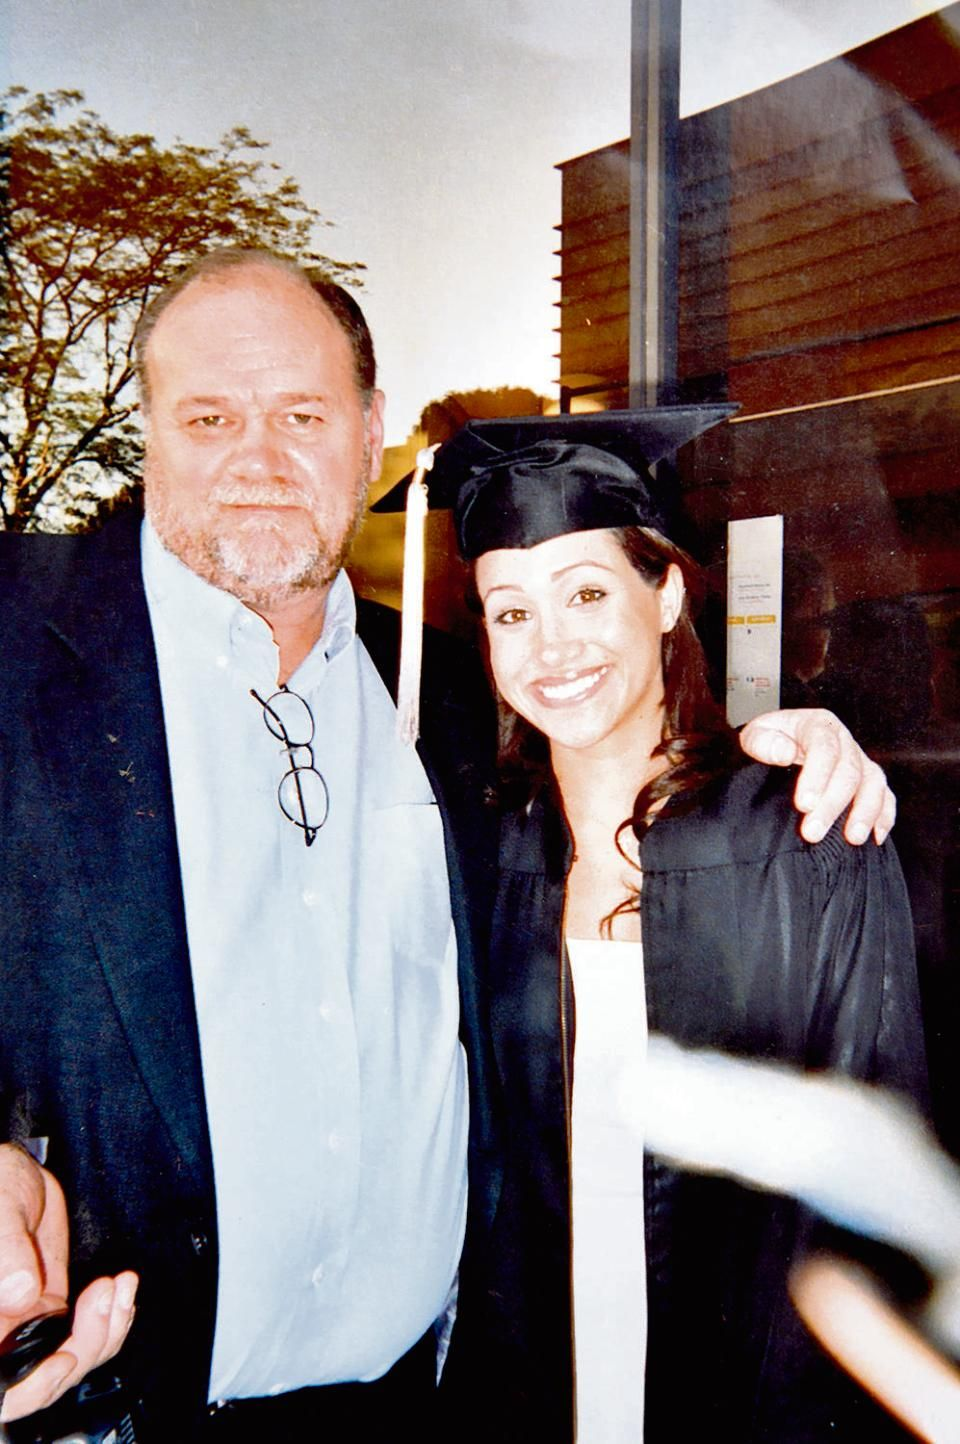 Thomas and Meghan Markle at her graduation